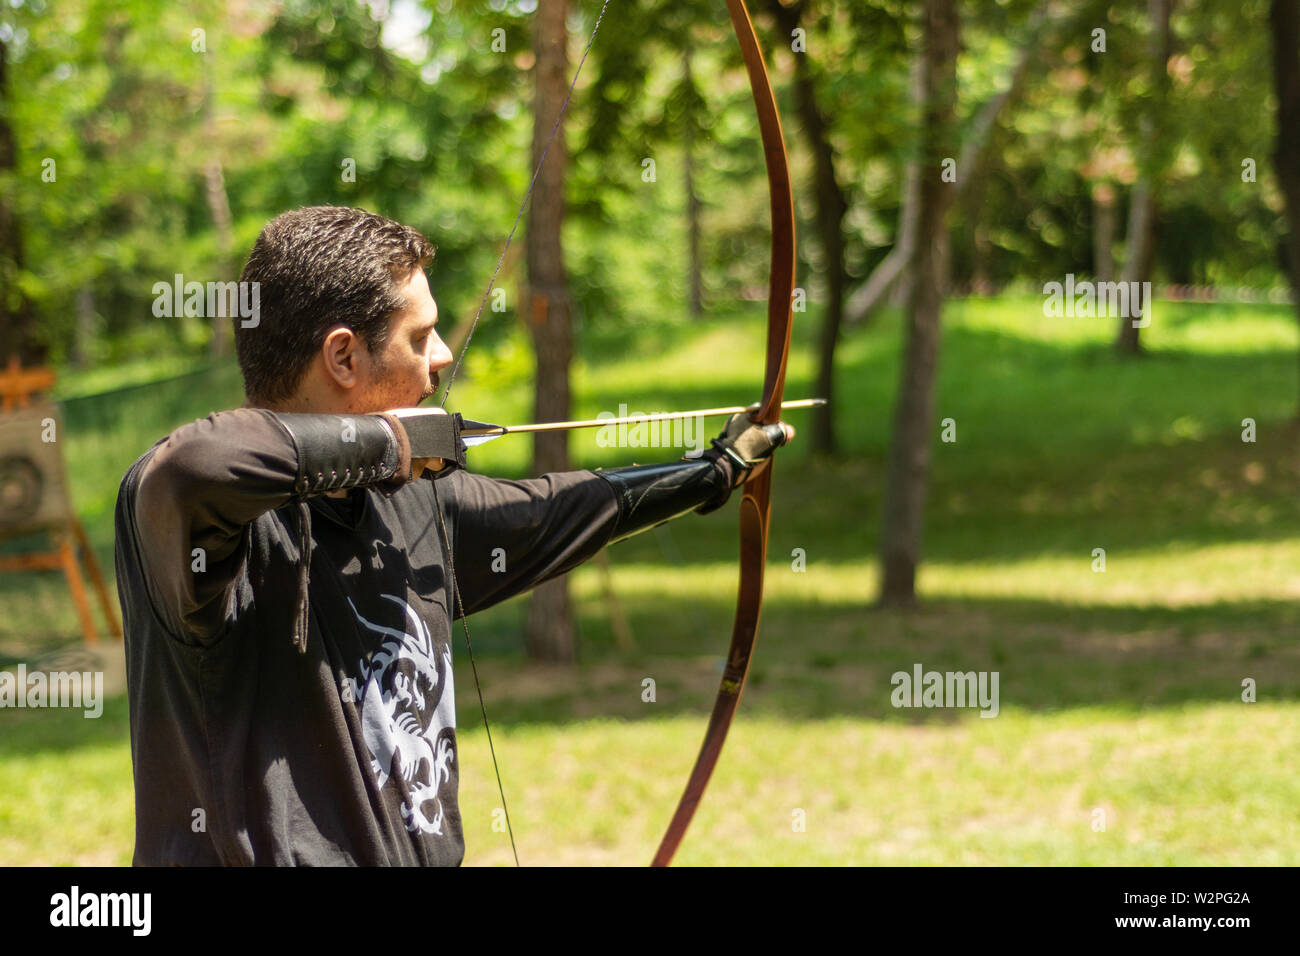 Nis, Serbia - June 16. 2019 Archer with bow shoot arrow in the forest on knight festival in a traditional suit. Bowman before shooting from a longbow - Stock Image